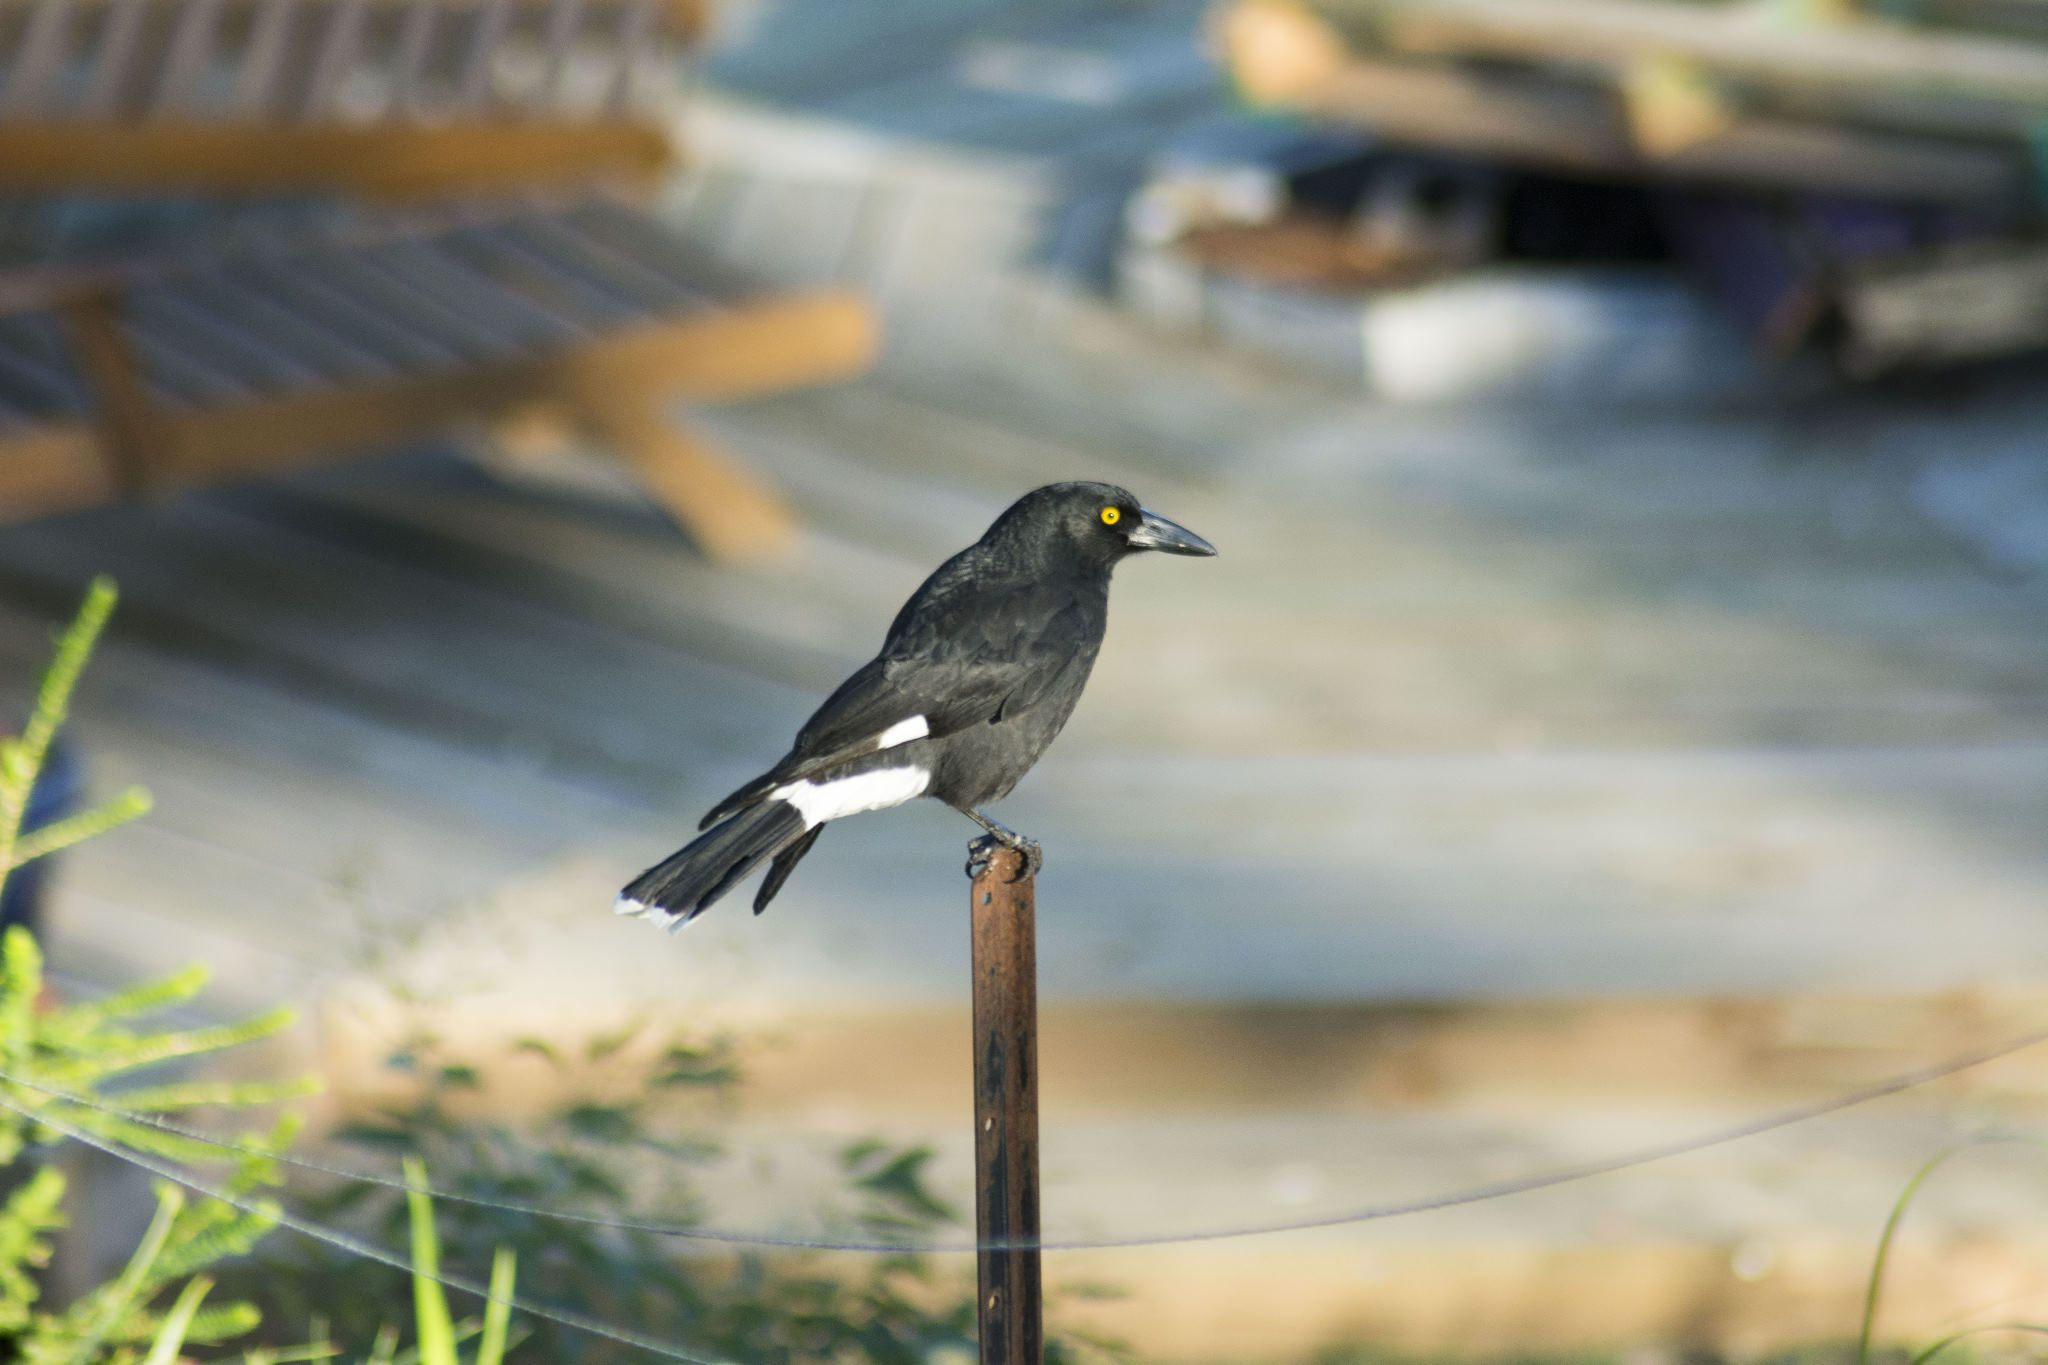 Pied Currawong - Sitting on a star picket